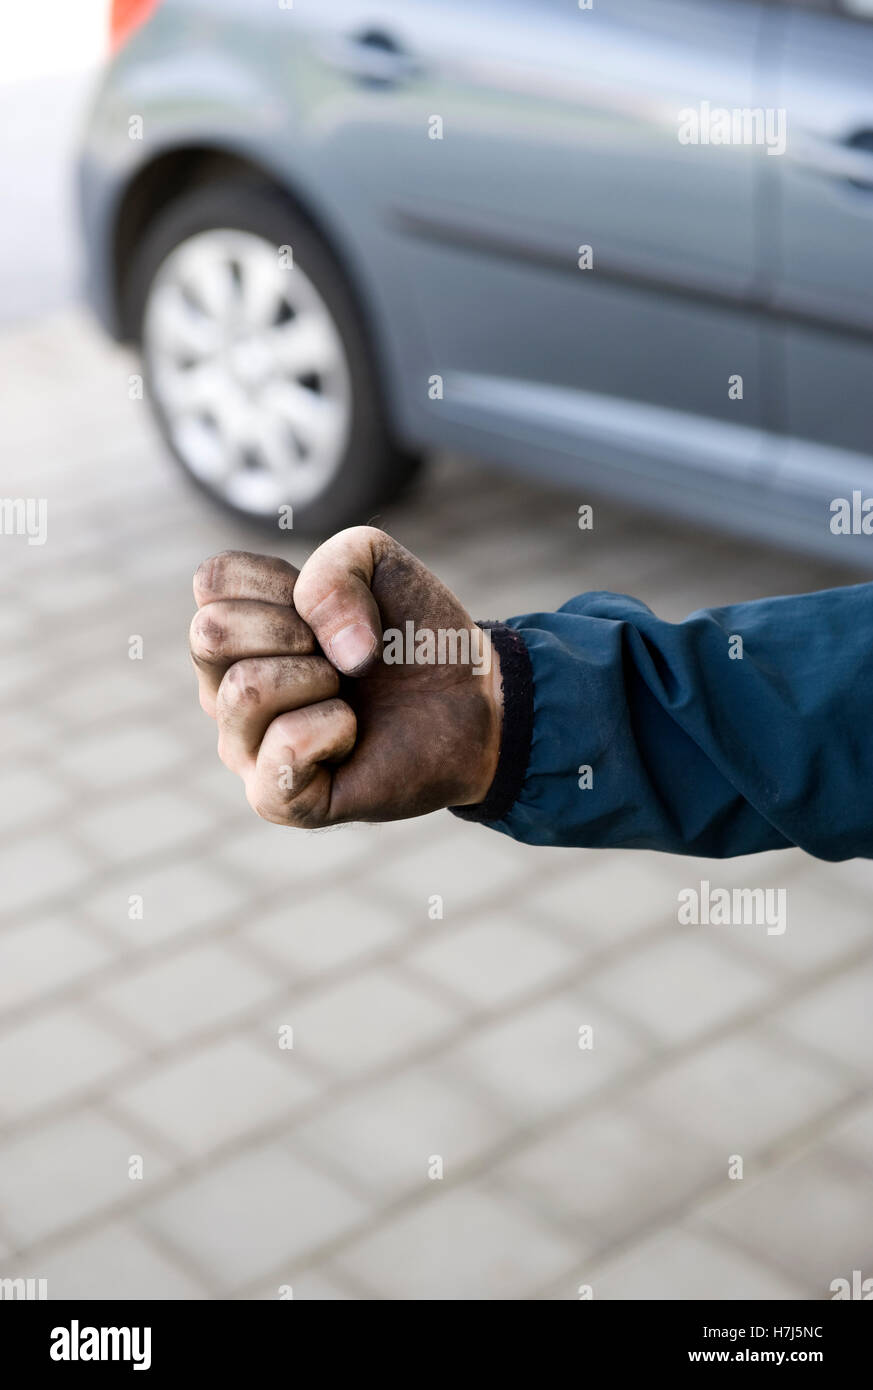 Manual labourer with a clenched fist - Stock Image